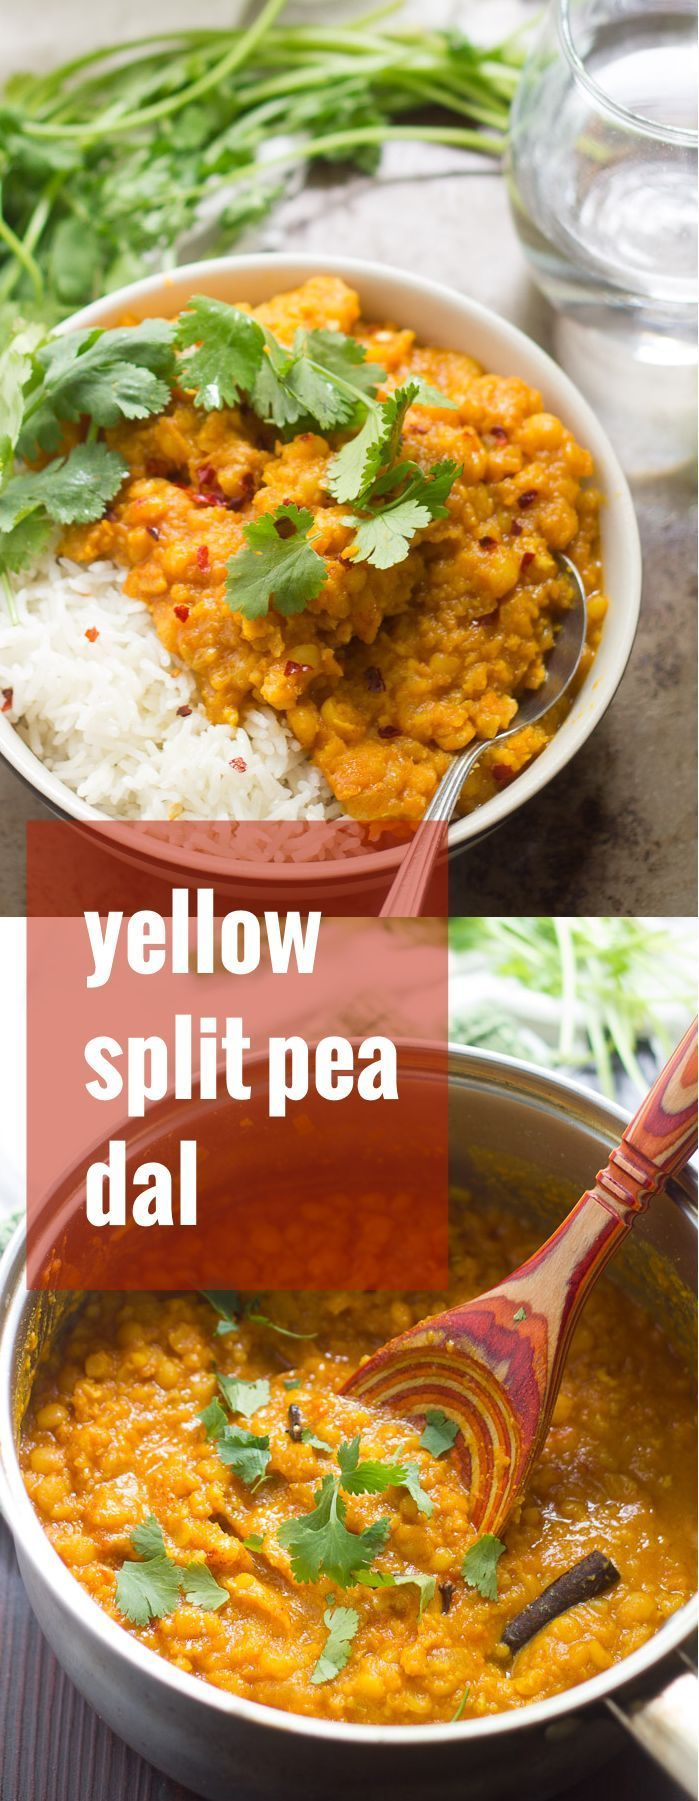 This flavorful and warming Afghan-inspired split pea dal is made with creamy yellow split peas simmered in ginger and toasty spices.